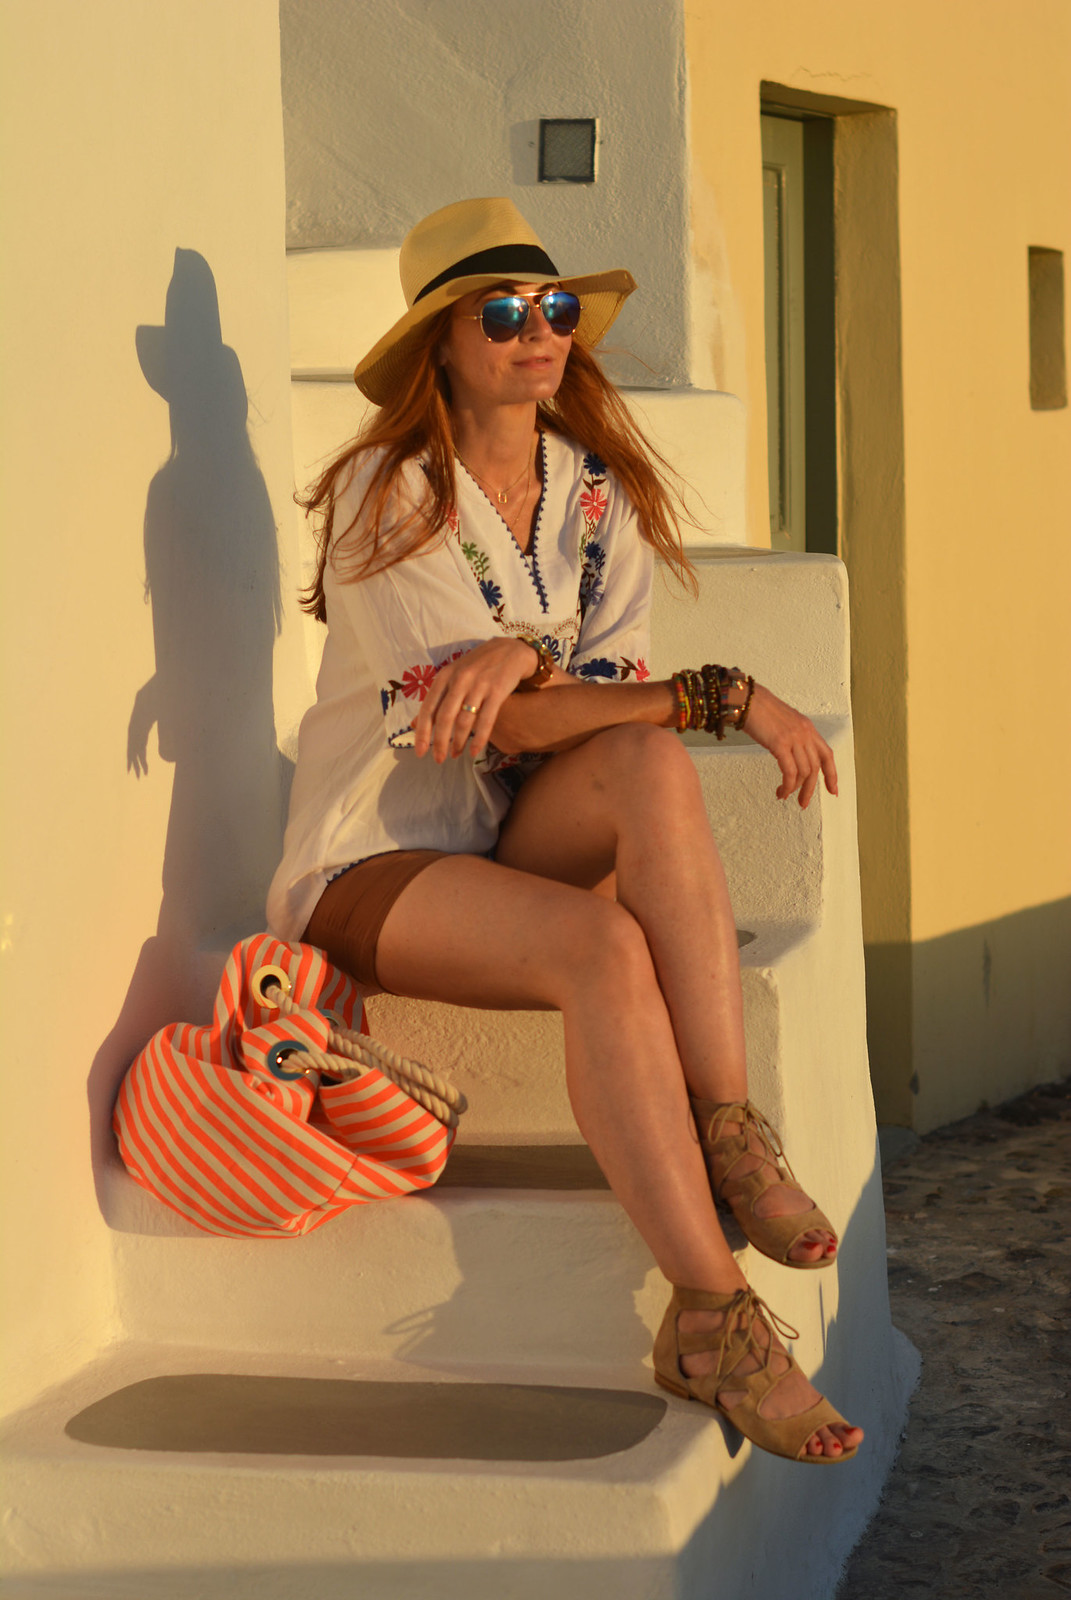 Summer holiday outfit | Embroidered top, shorts, suede cuff sandals